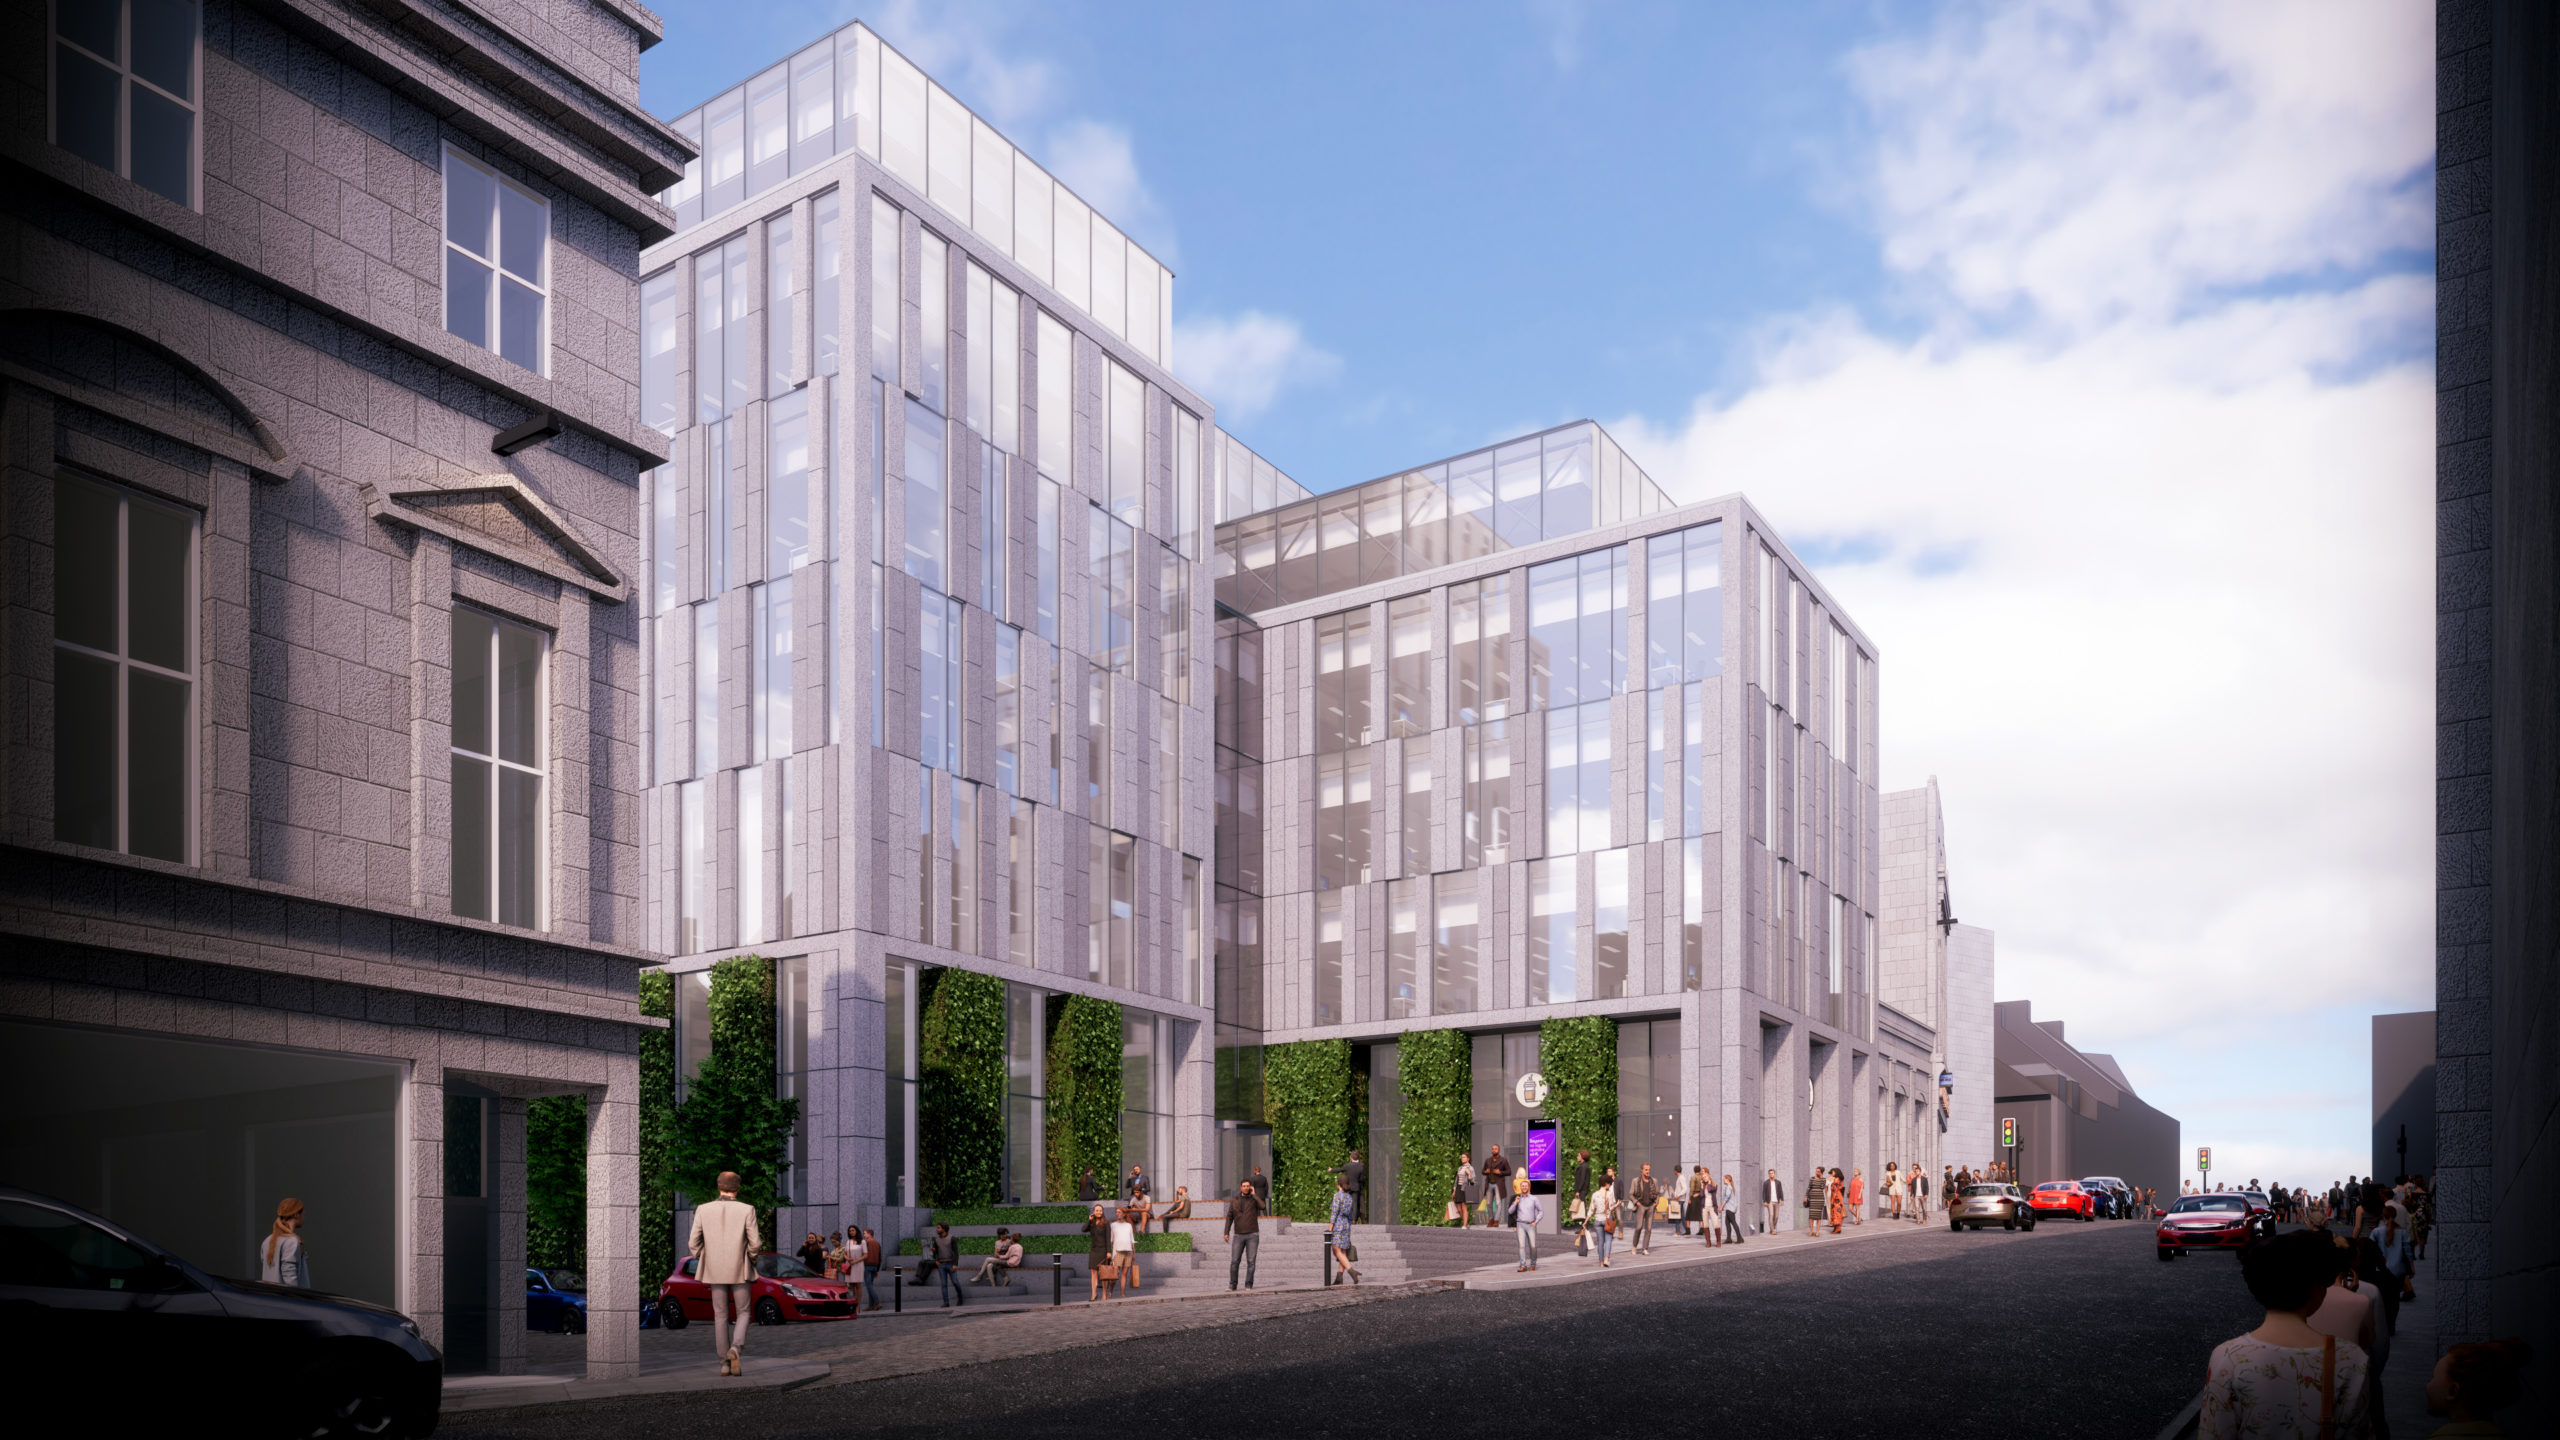 An image from the planning submission showing how the new Aberdeen Market building could look